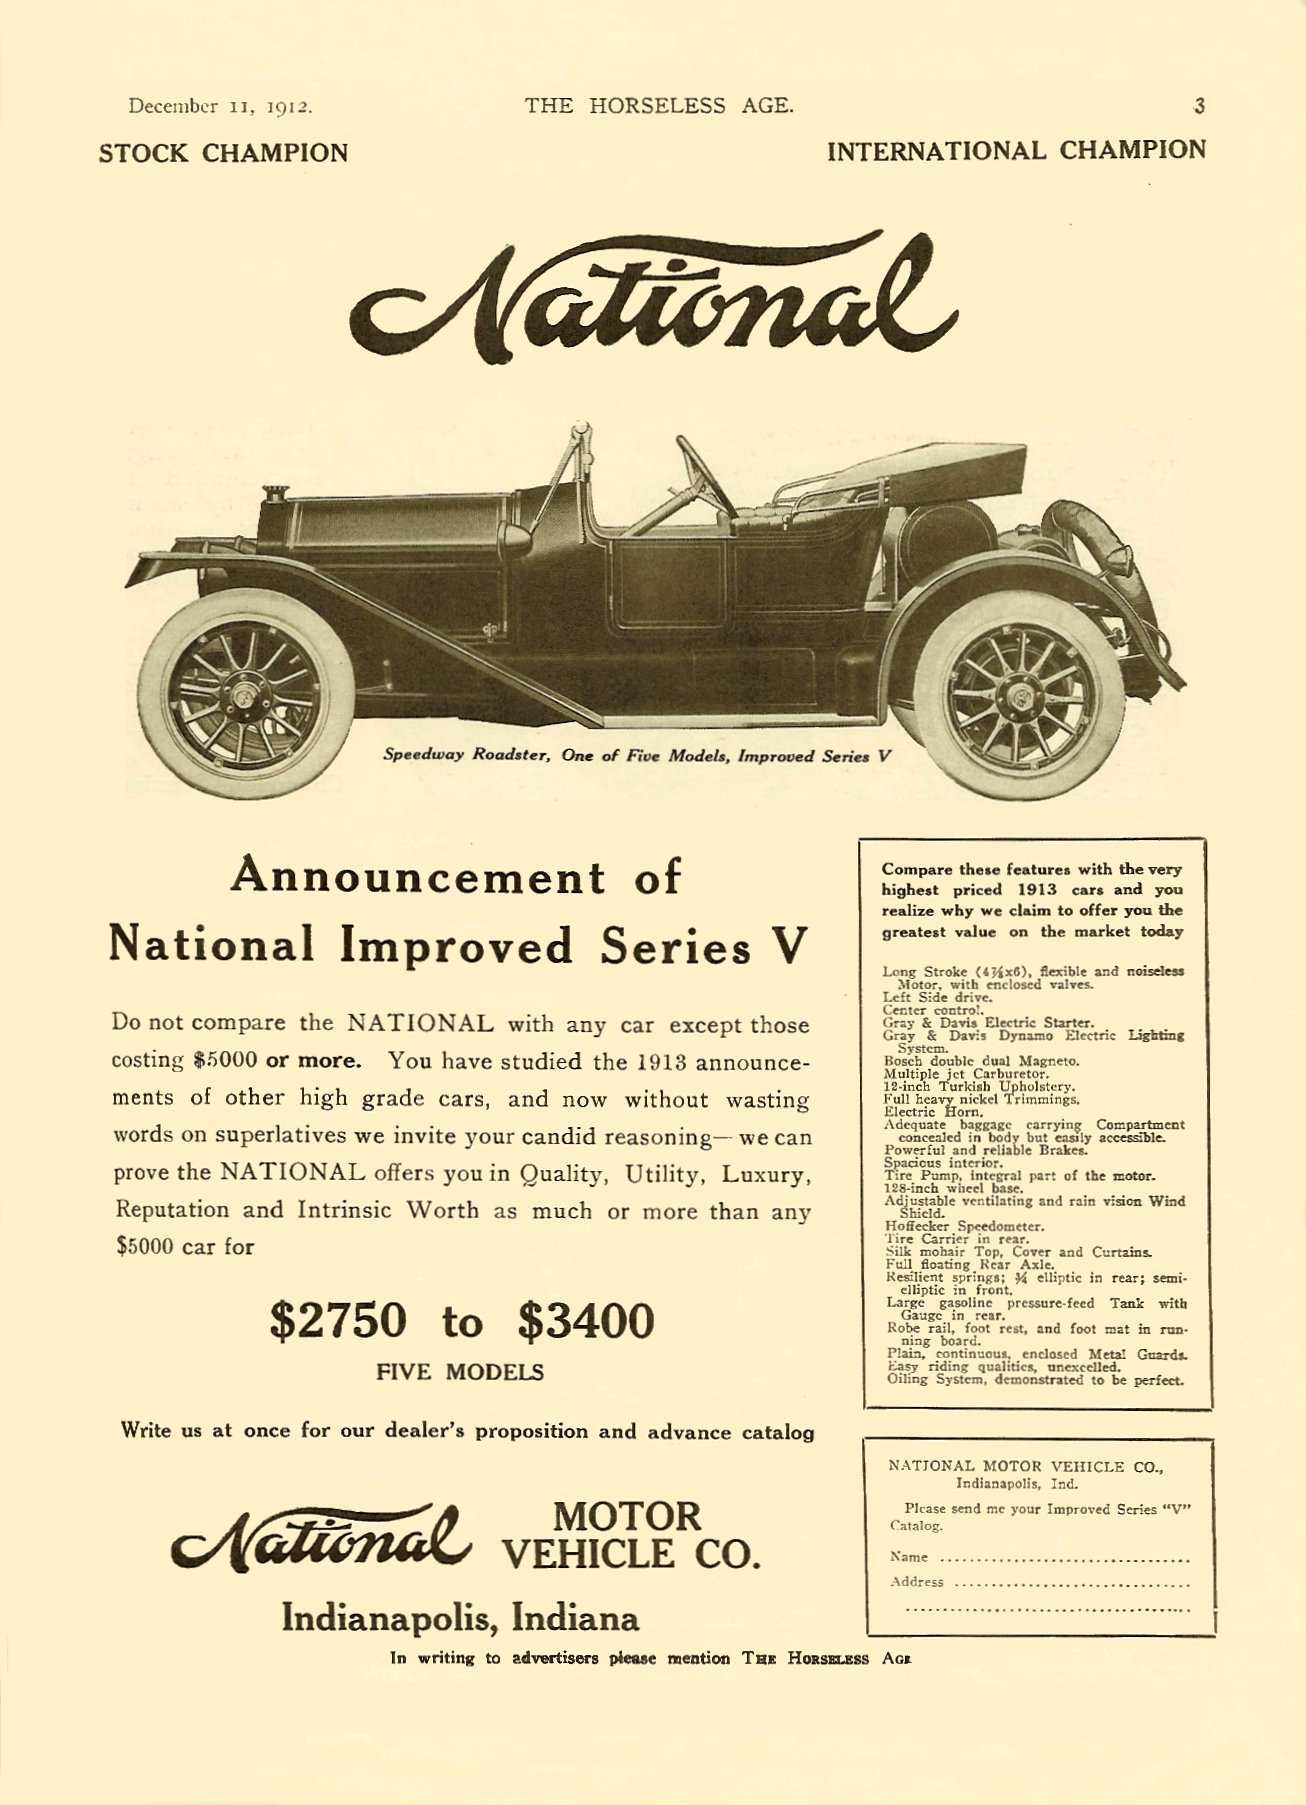 1913 12 11 NATIONAL Announcement of Improved Series V THE HORSELESS AGE Dec 11, 1912 Vol. 30 No. 24 page 3 9″x12″